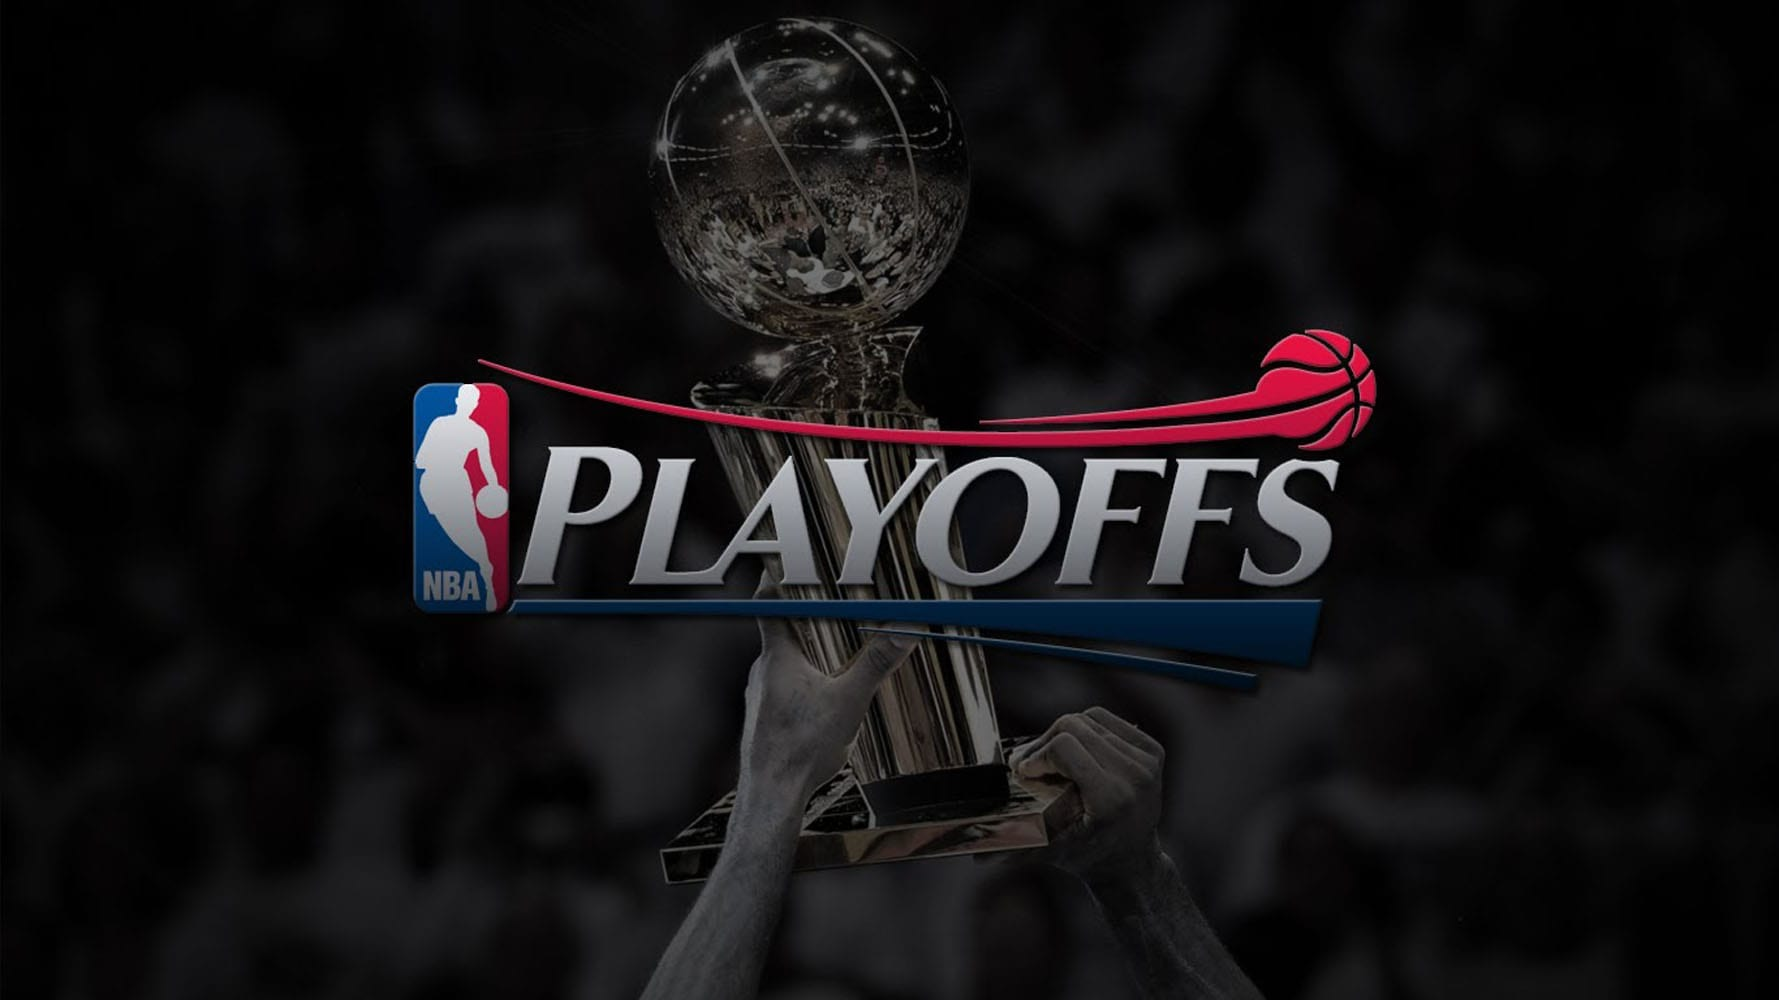 On Saturday The First Games Of The  Playoffs Will Be Played  Teams Have Worked Hard All Season To Secure Themselves A Spot